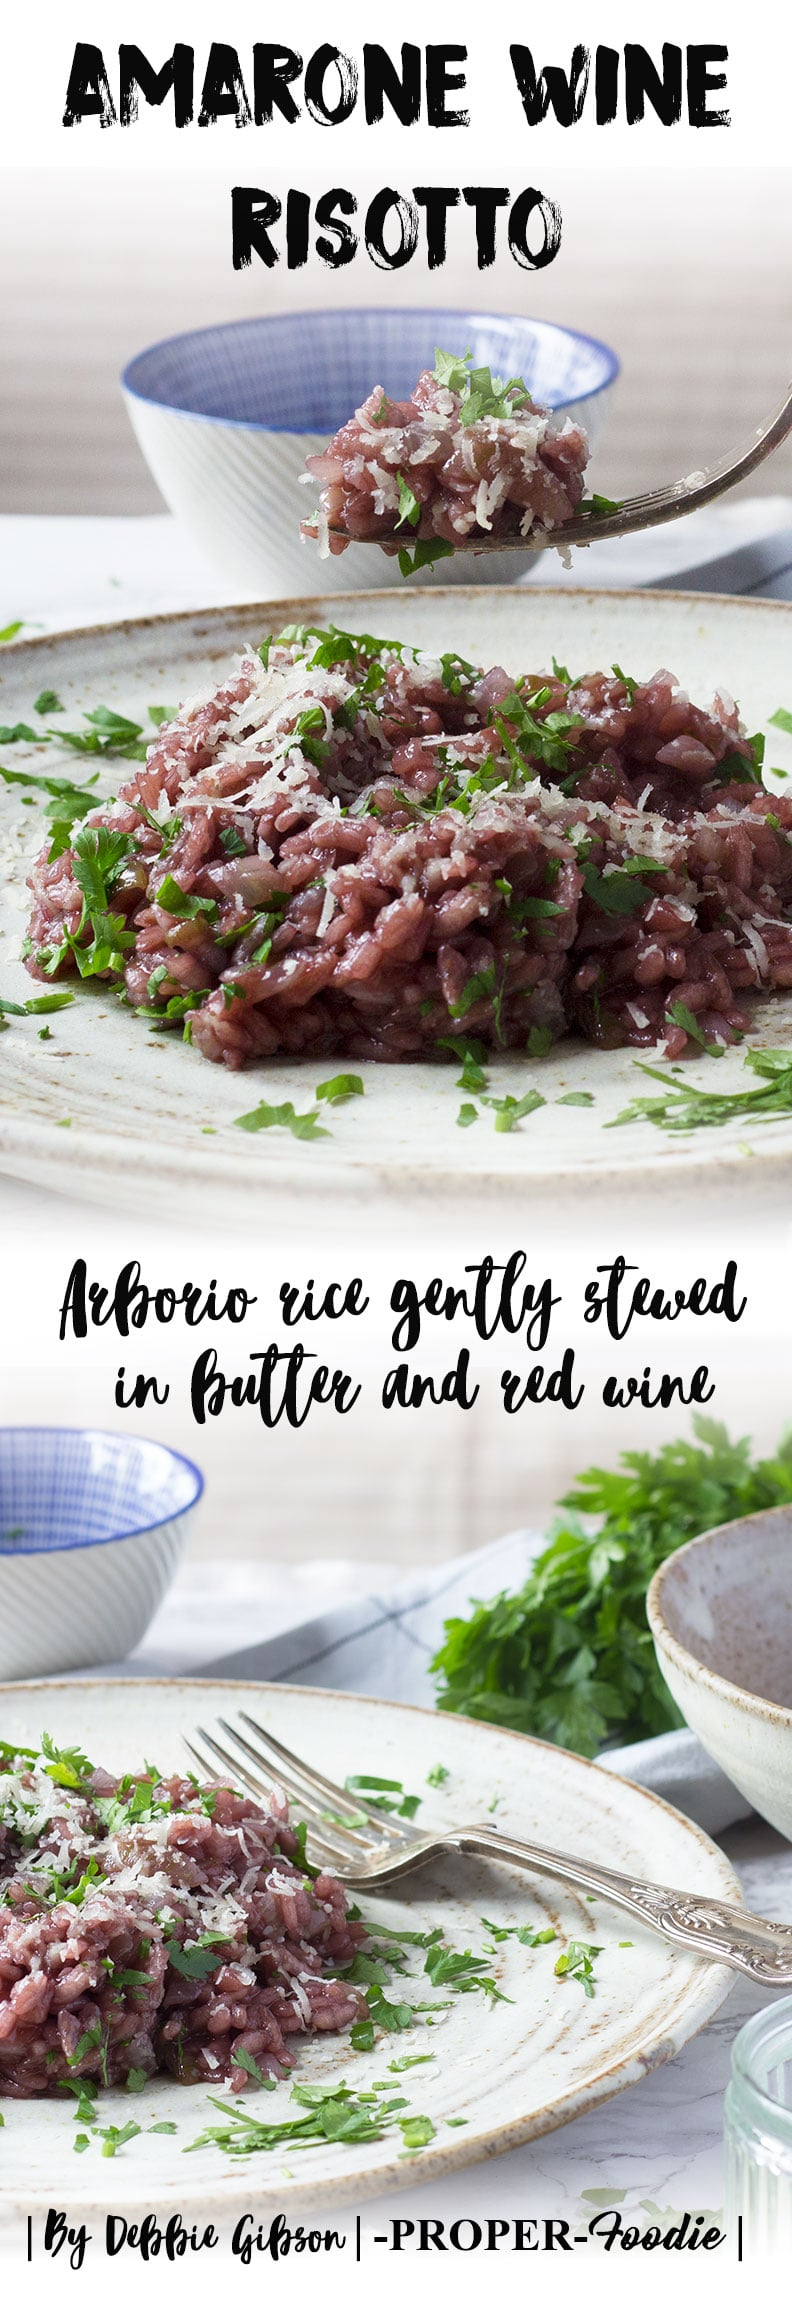 Arborio rice gently stewed in butter and amarone red wine